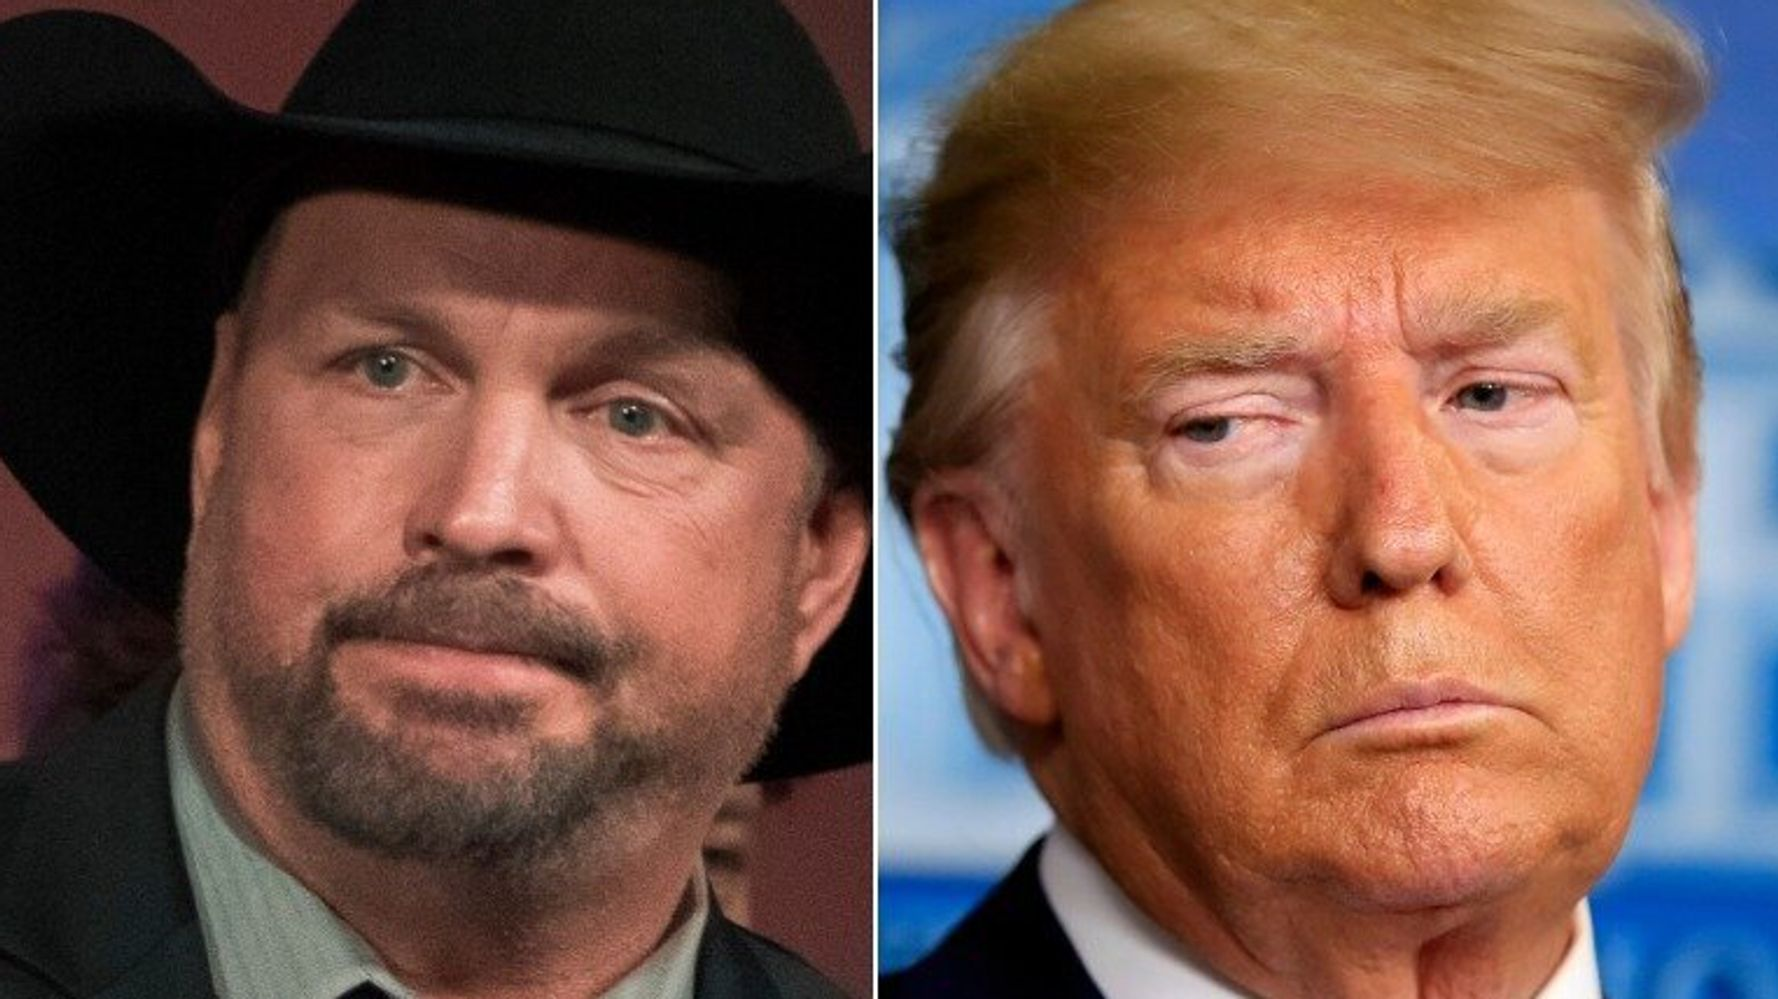 Trump Supporters Flip Out After Completely Misreading Garth Brooks' Shirt